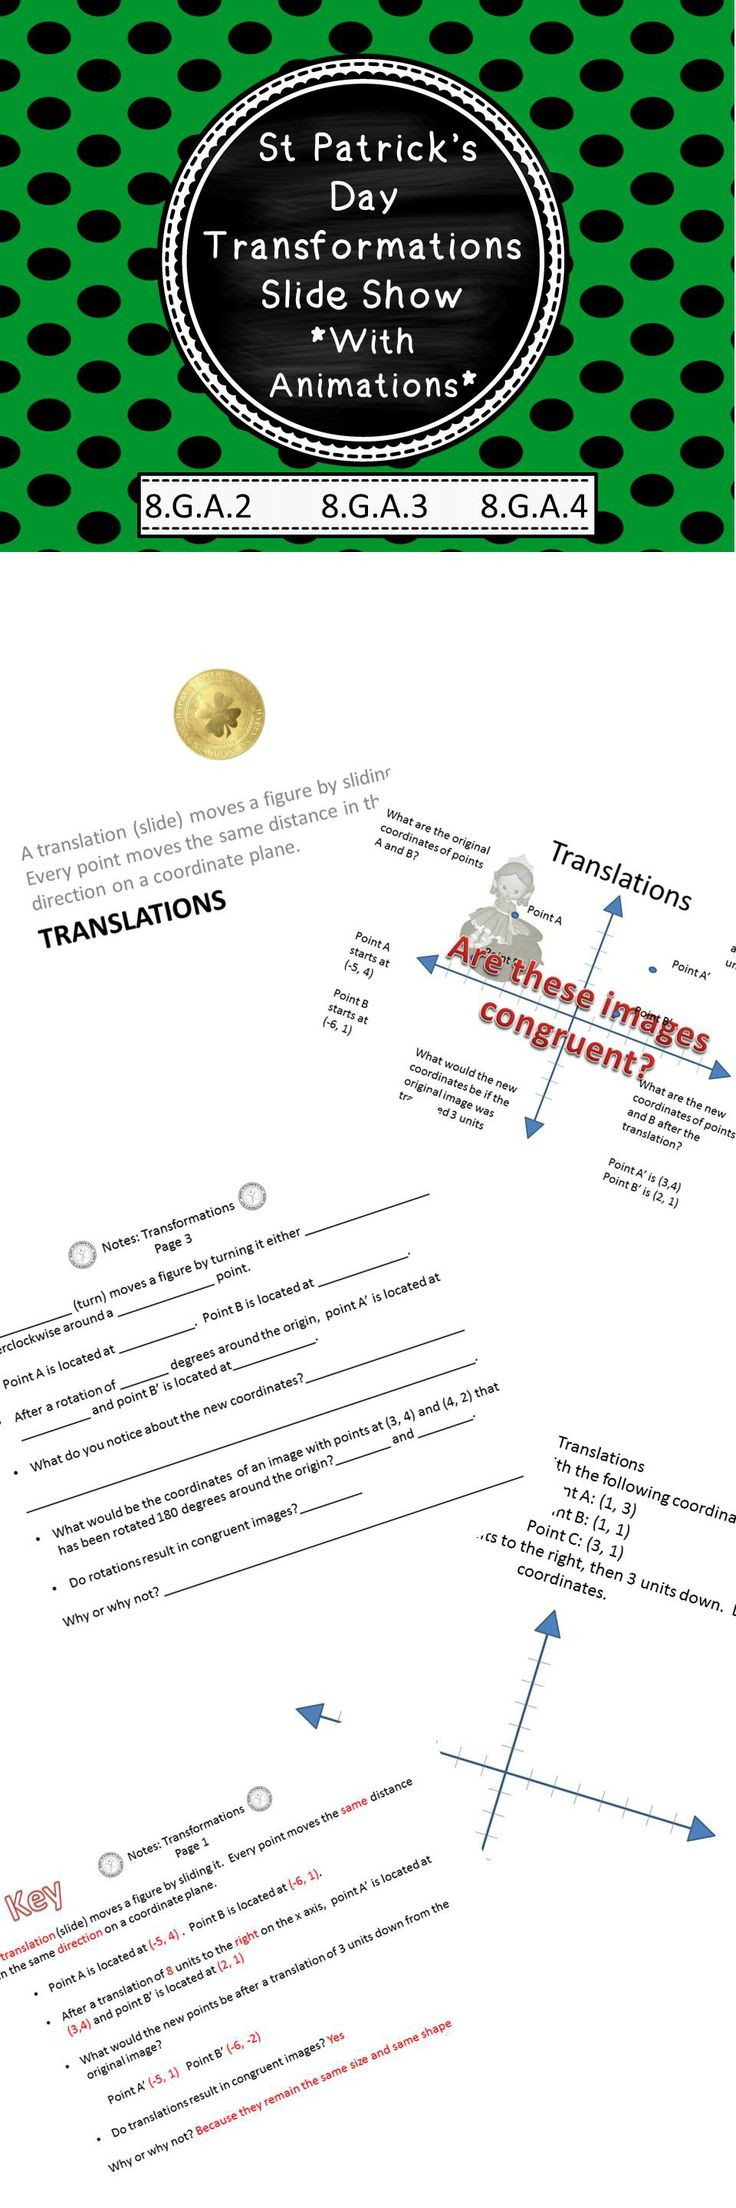 worksheet Translations Worksheets the 25 best translation in math ideas on pinterest tesla this ppt show and coordinating worksheets product is packed with quality animations definitions examples for rotations dilations